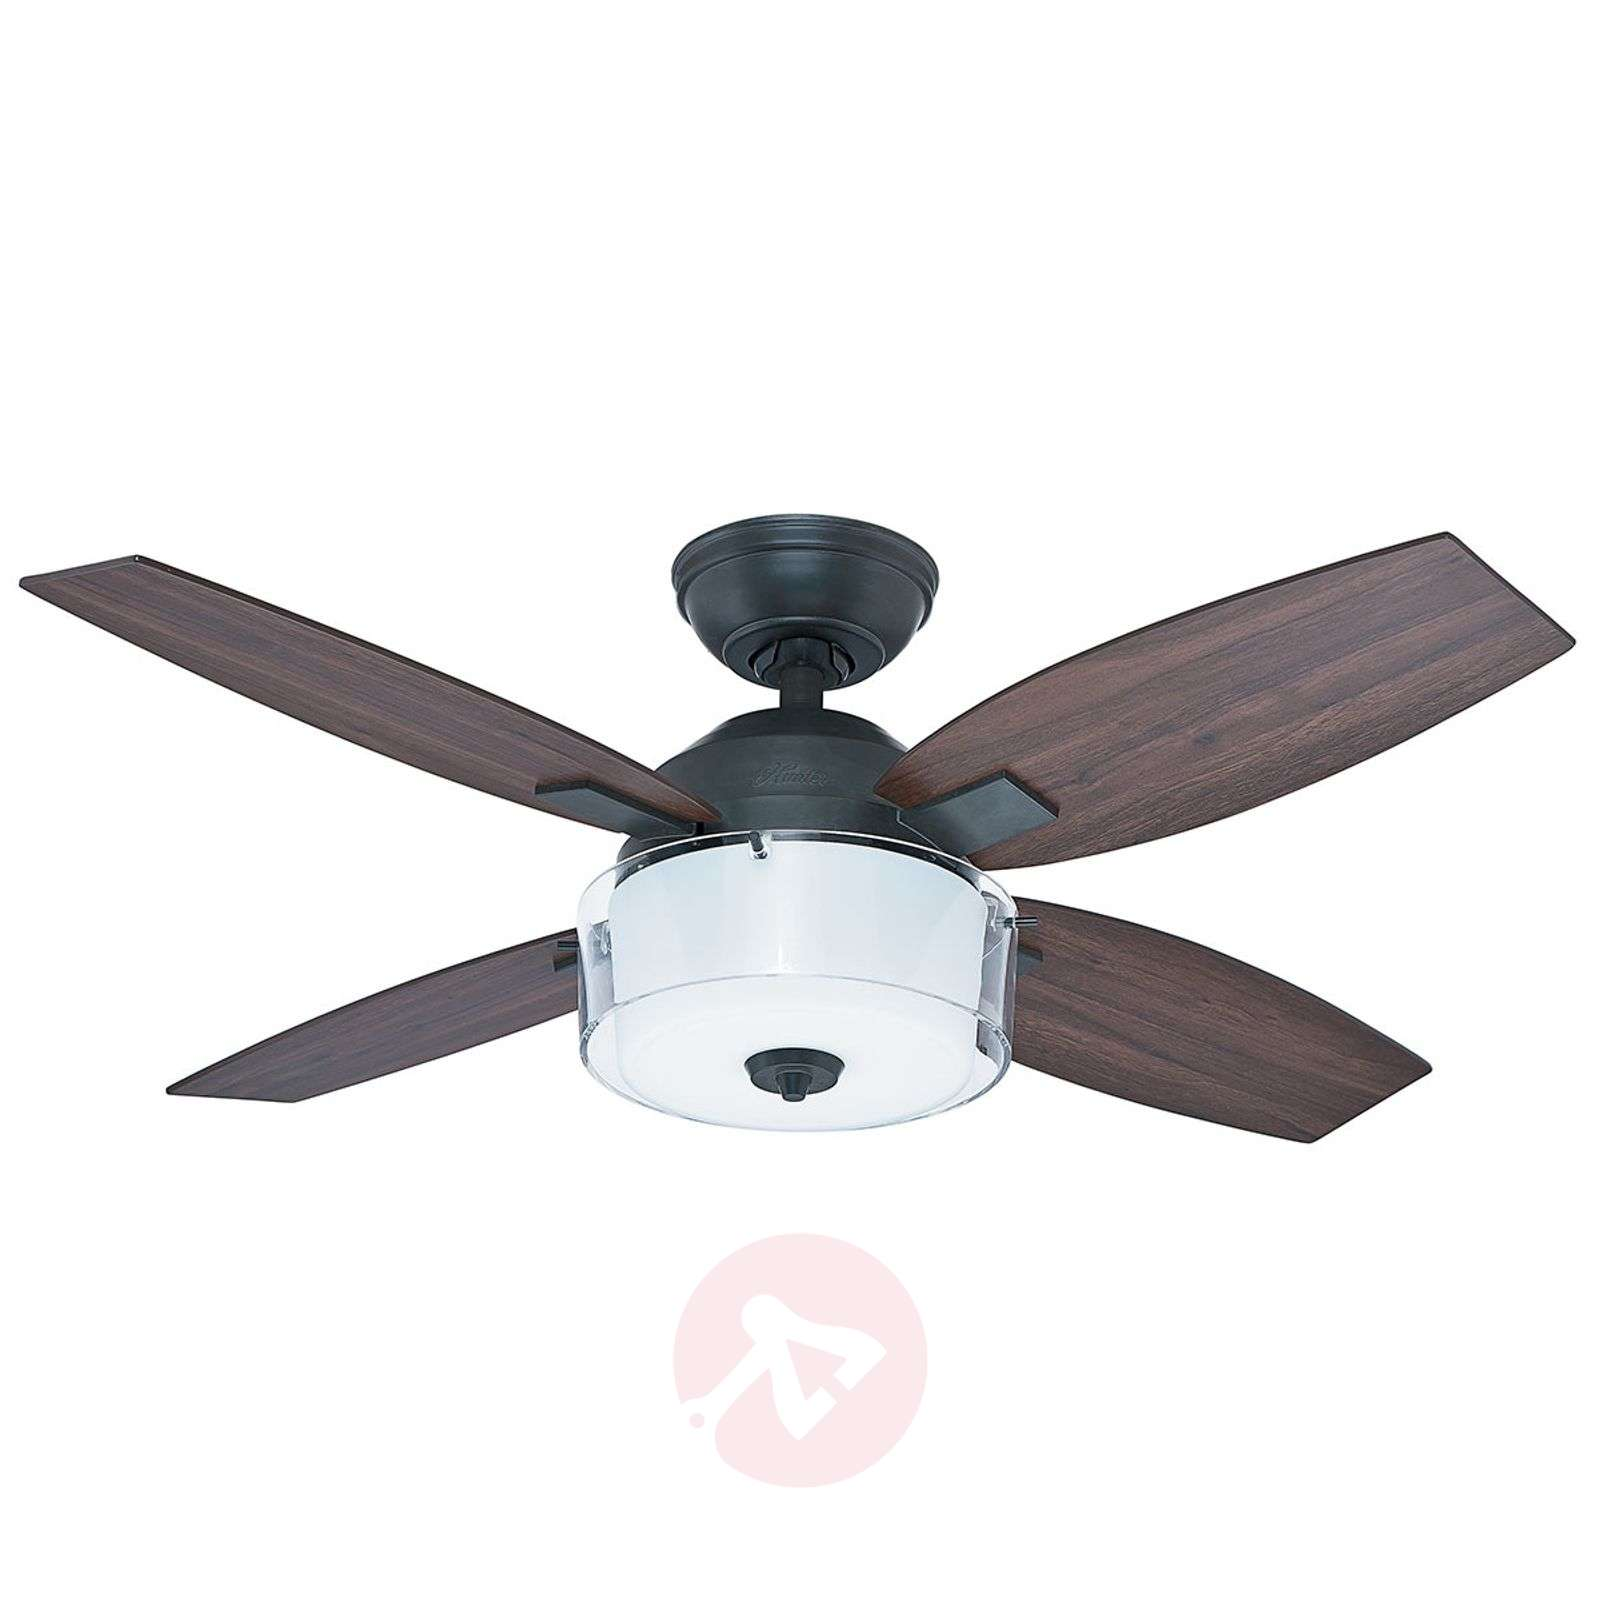 Ventilateur de plafond hunter central park moderne - Ventilateur de plafond silencieux hunter ...